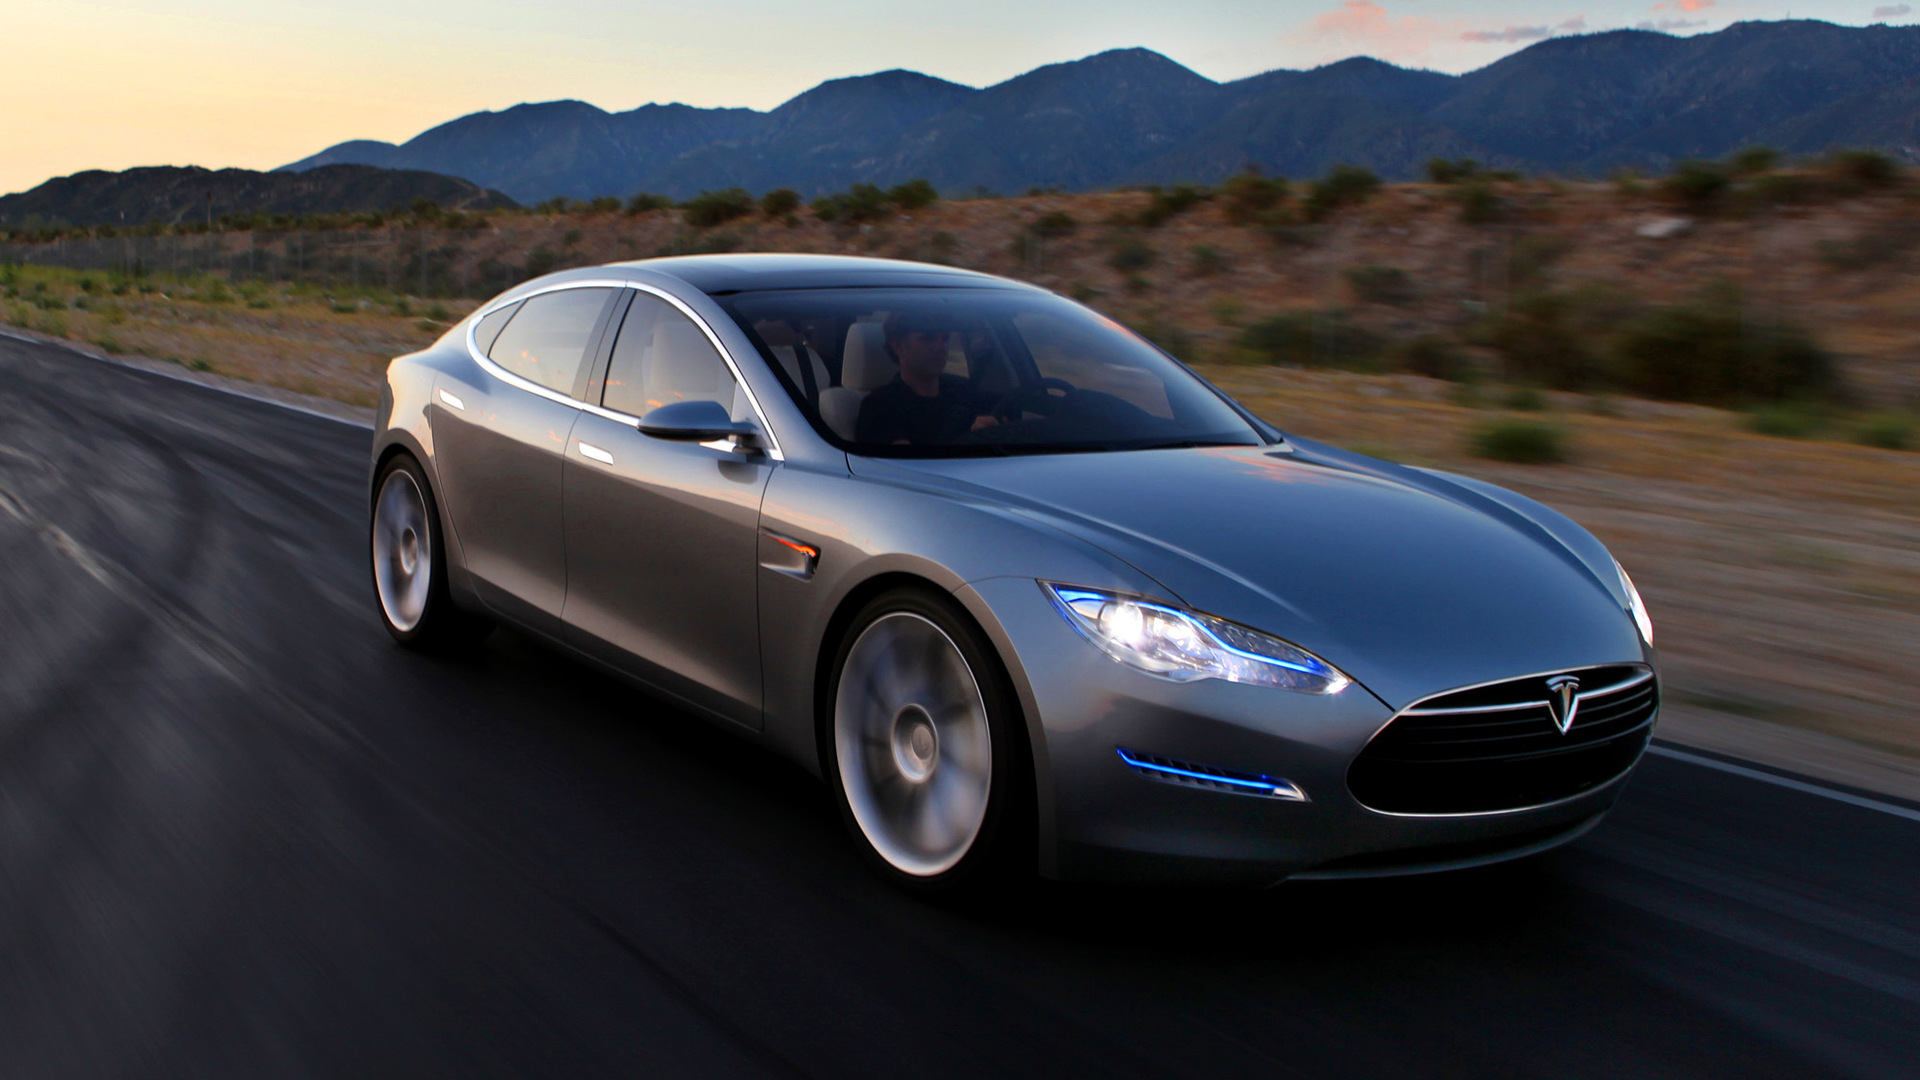 Tesla Model S Concept 2009 Wallpapers And Hd Images